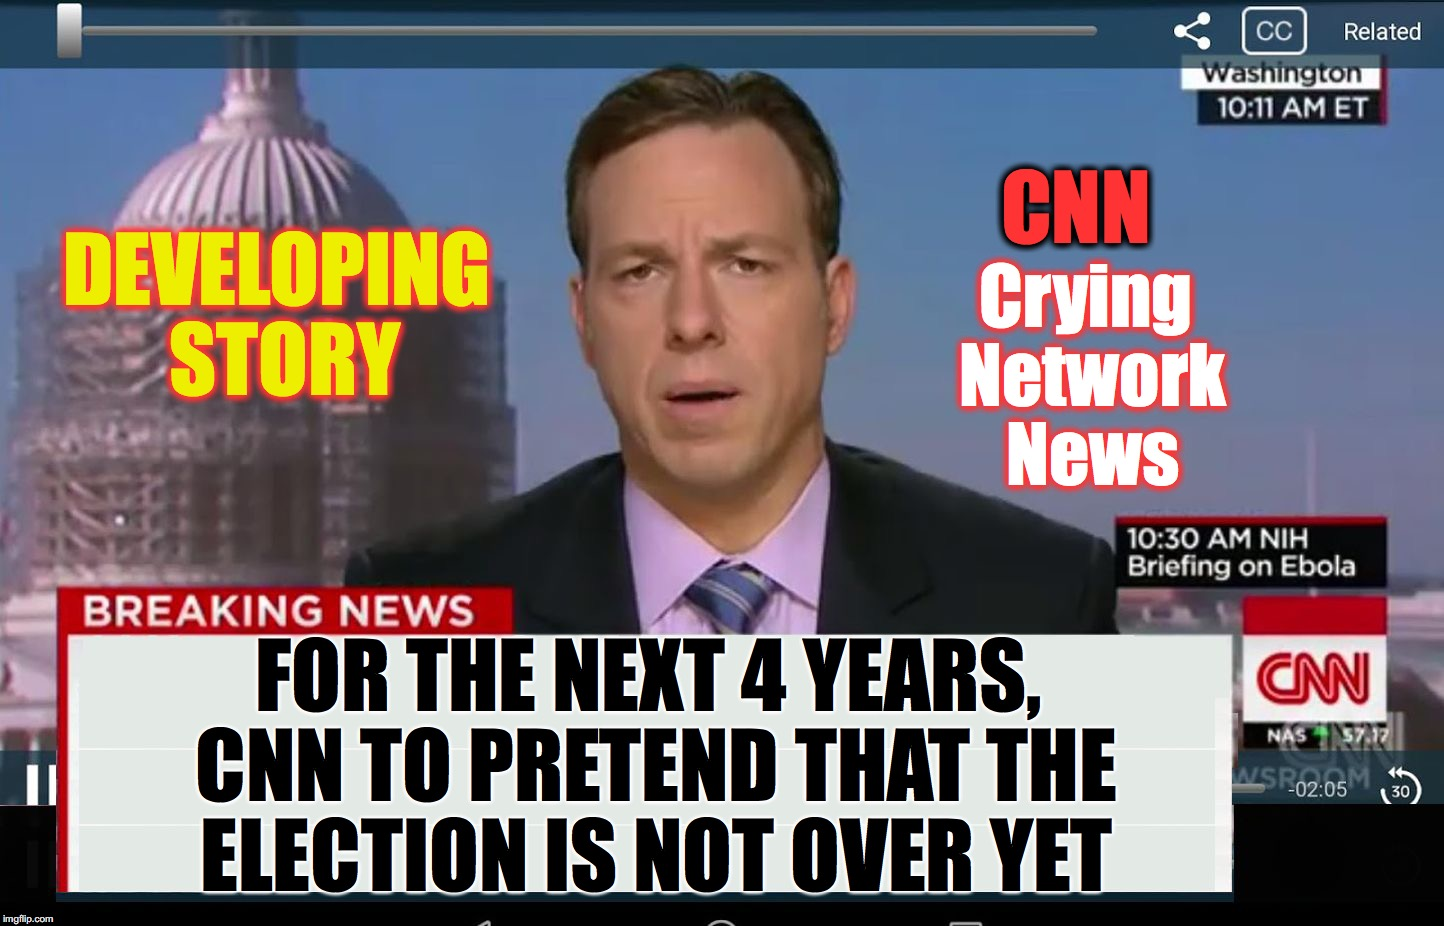 CNN Crazy News Network | DEVELOPING STORY FOR THE NEXT 4 YEARS, CNN TO PRETEND THAT THE ELECTION IS NOT OVER YET CNN Crying Network News | image tagged in cnn crazy news network | made w/ Imgflip meme maker